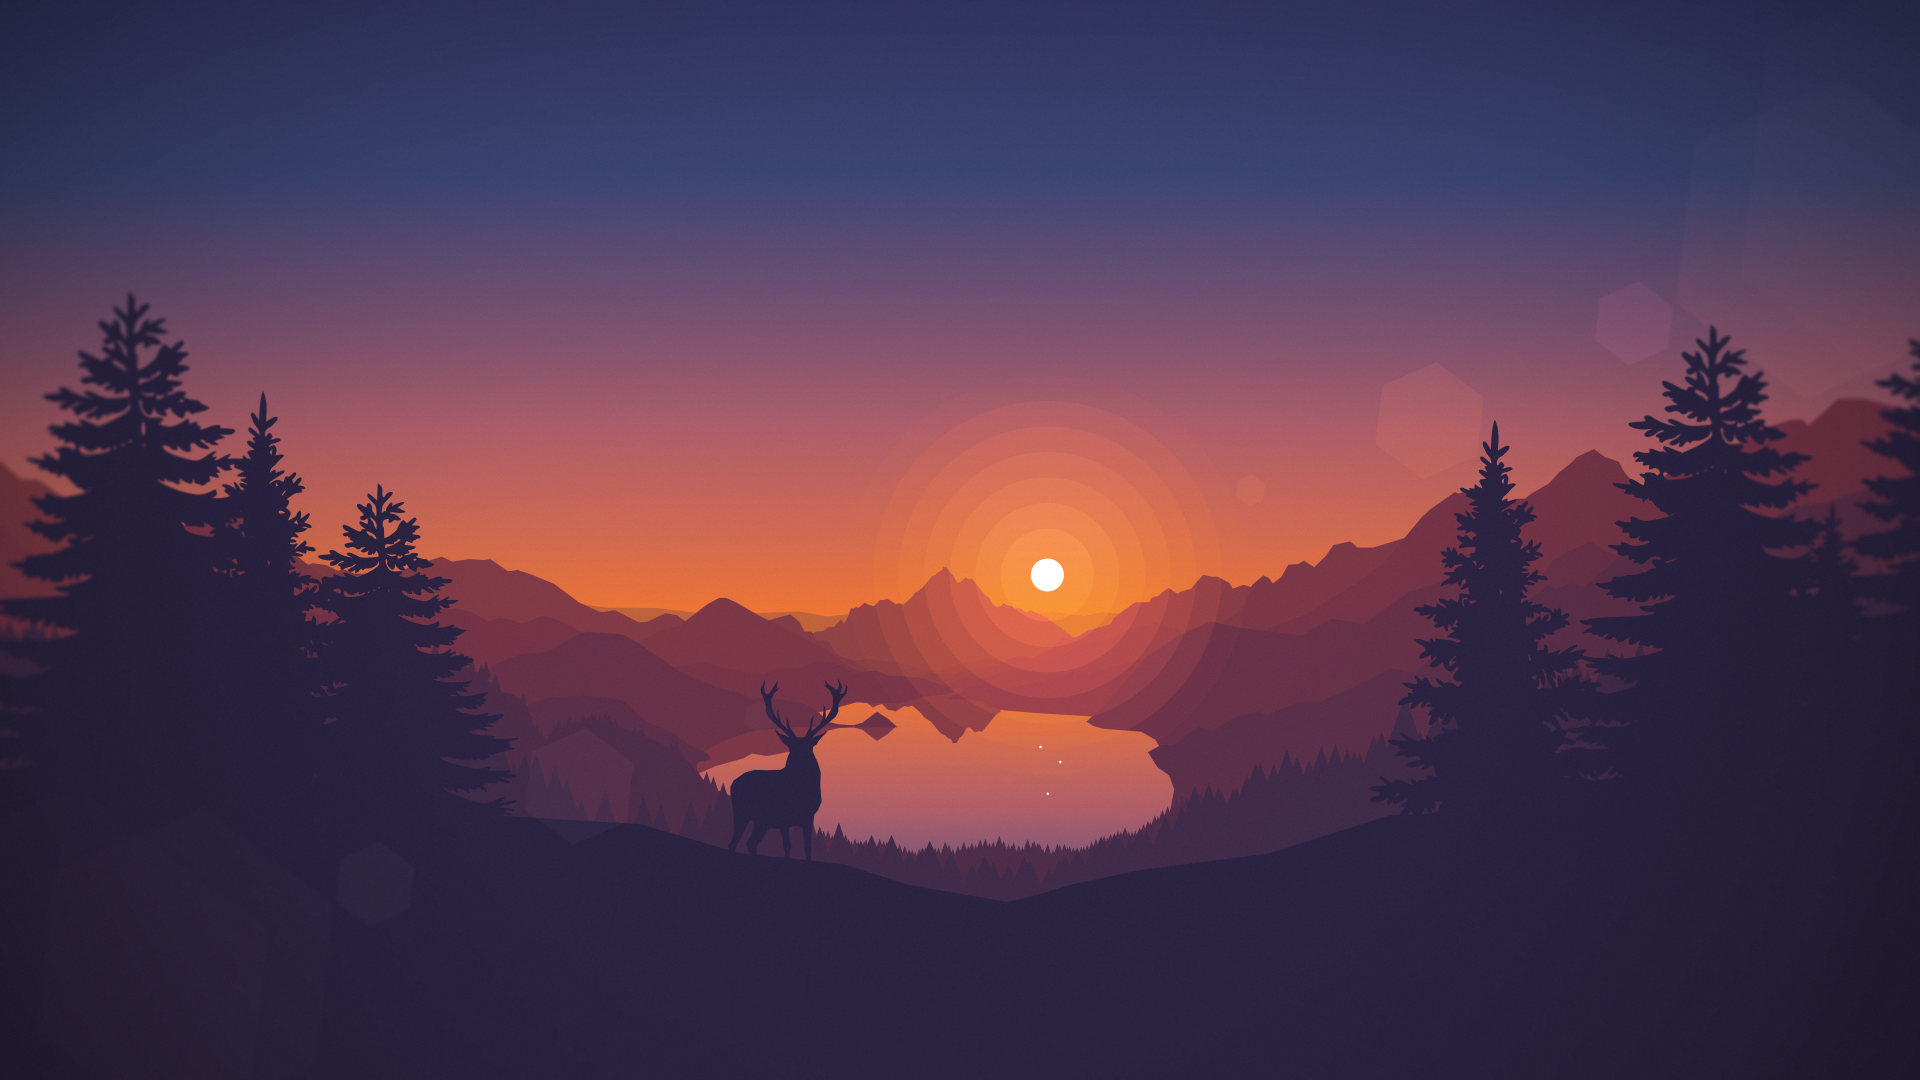 Drawn wallpaper silhouette Artwork #lake #animals #landscape nature